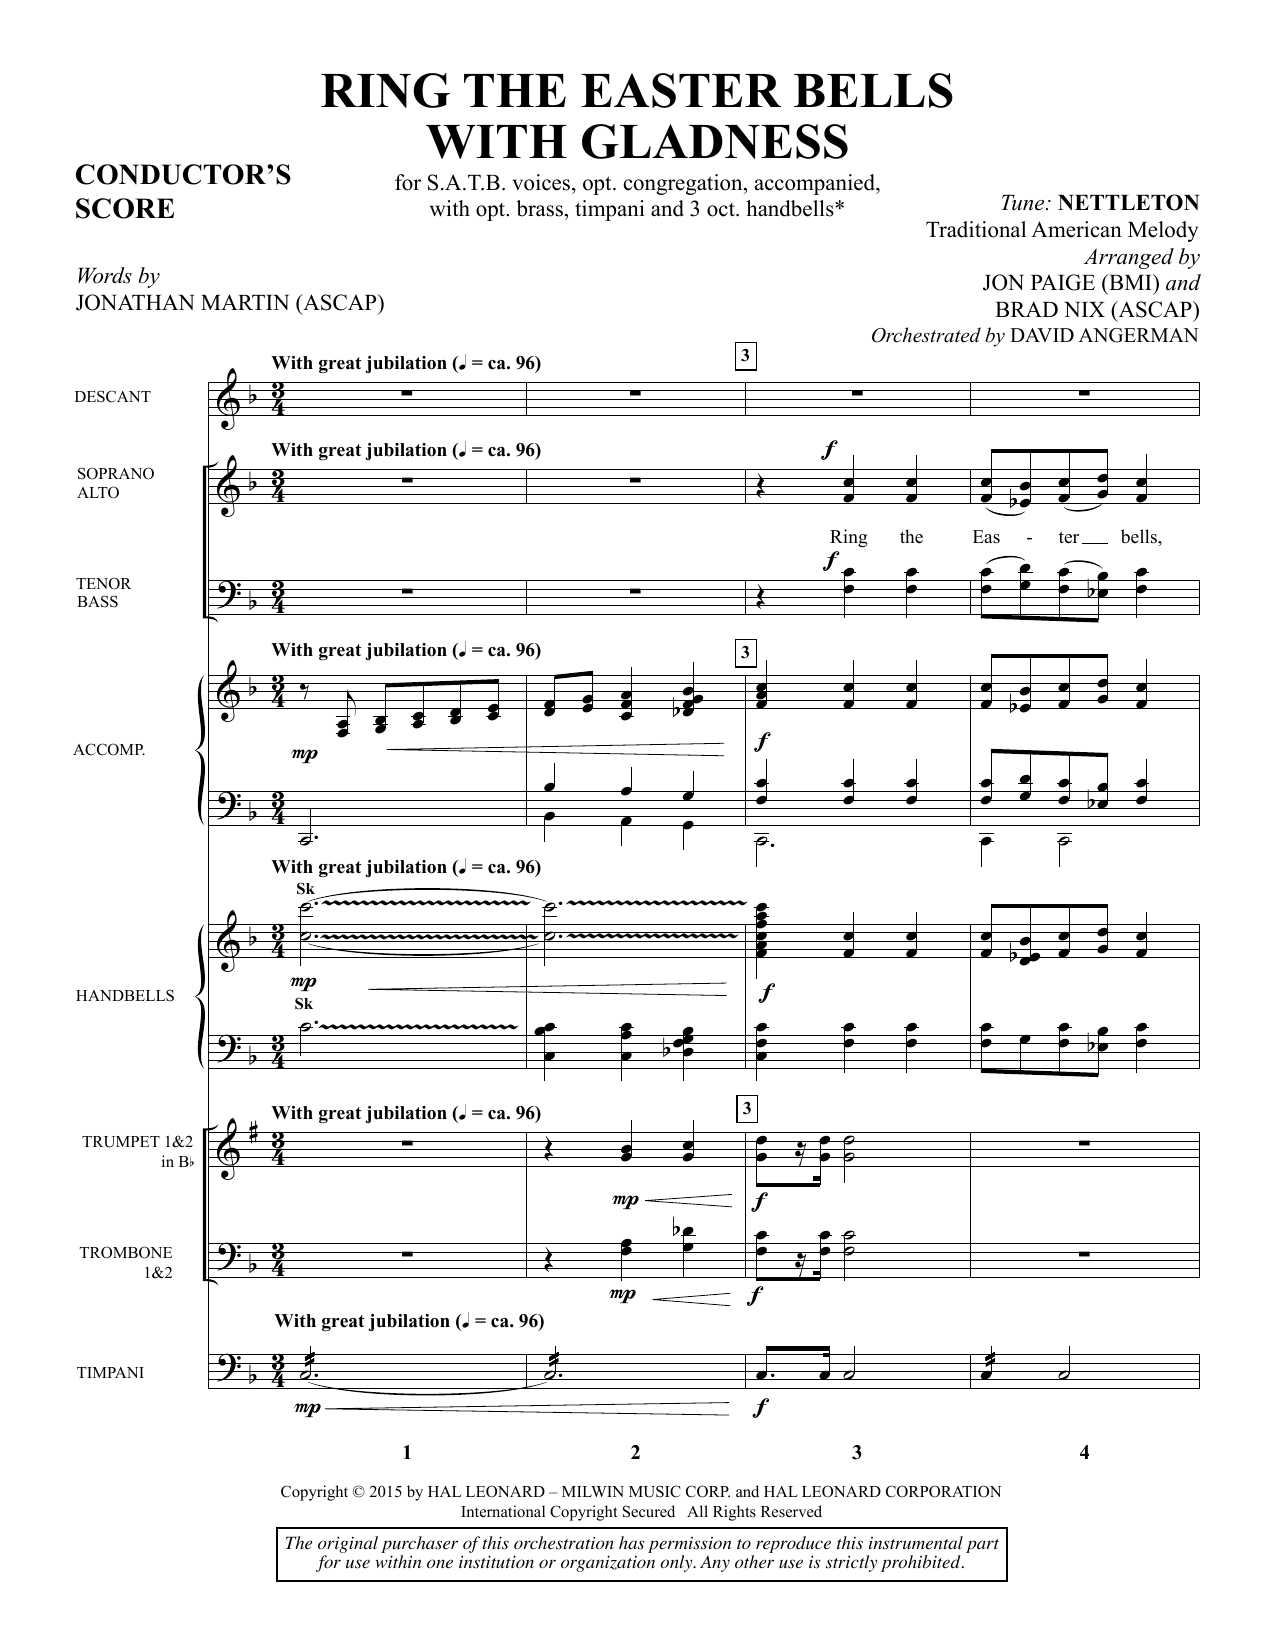 Ring the Easter Bells with Gladness (COMPLETE) sheet music for orchestra/band by Jonathan Martin, Brad Nix and Jon Paige. Score Image Preview.